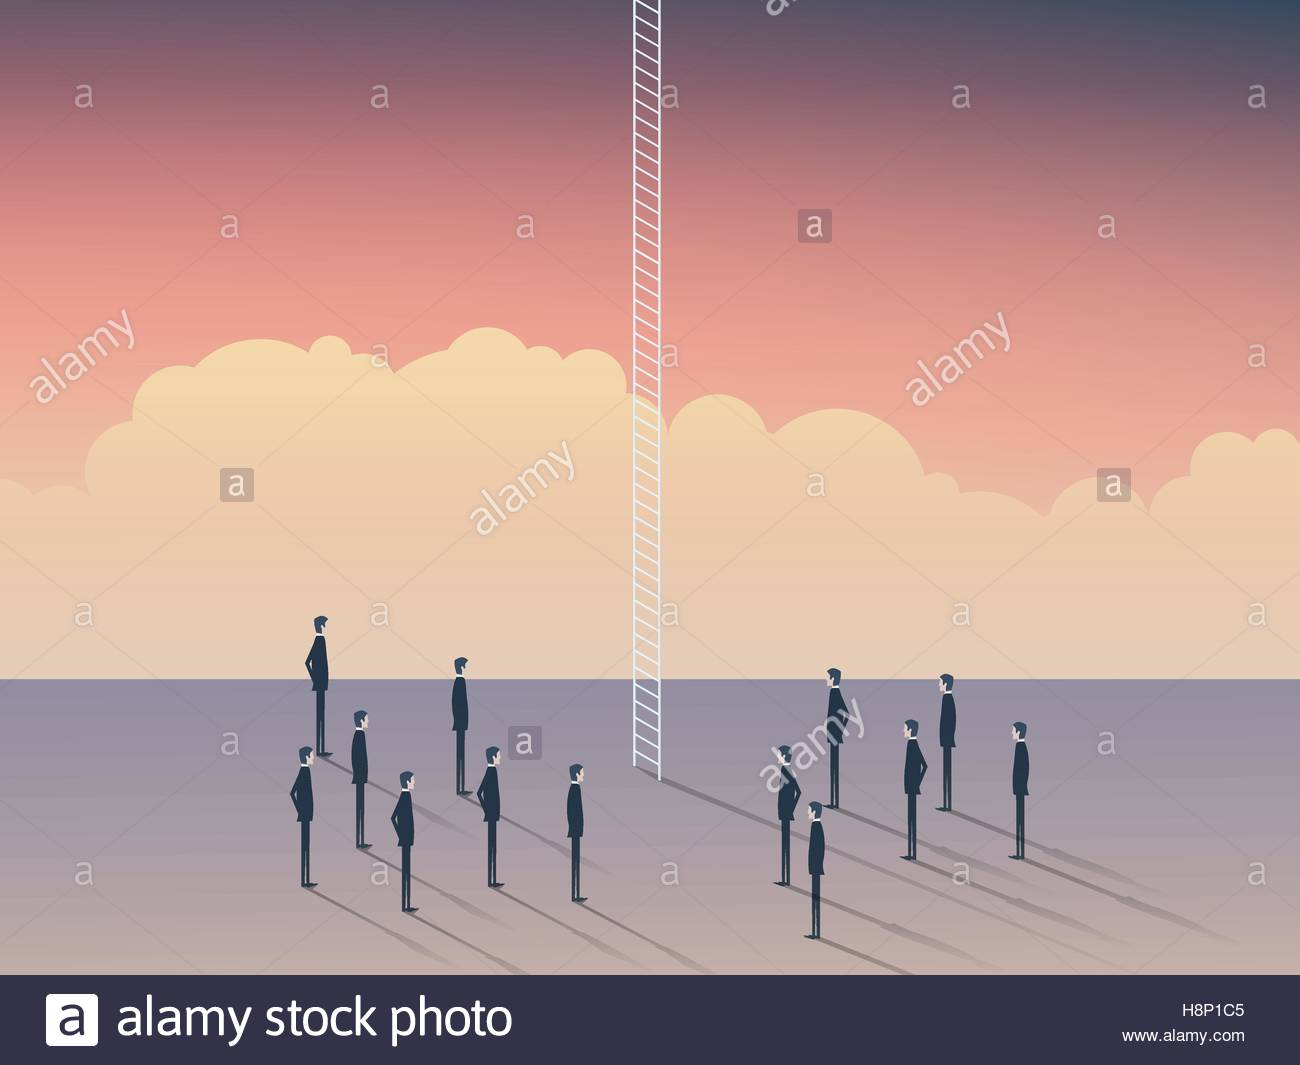 Business and career opportunities, corporate ladder. Businessmen standing to climb above clouds, sky is the limit. - Stock Vector